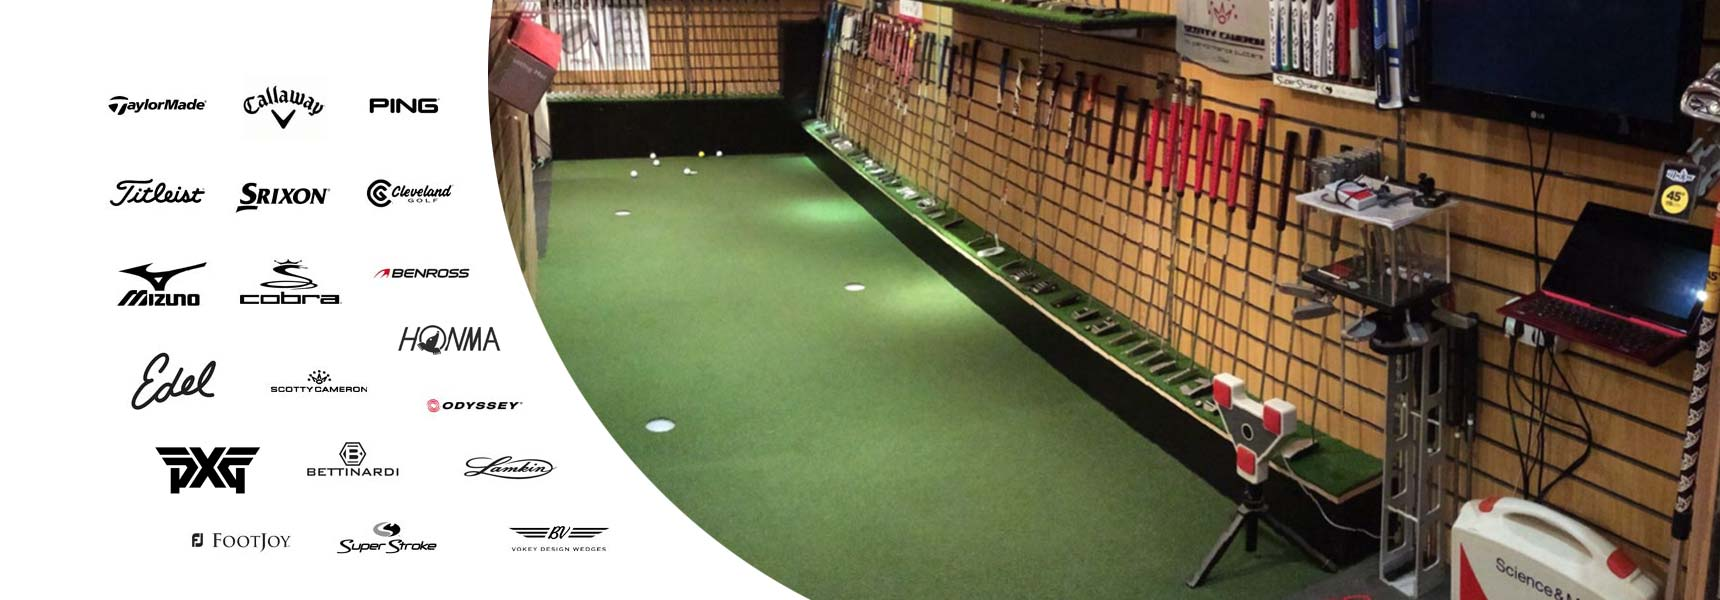 796c521cf789 we have a huge range of putters in our performance studio